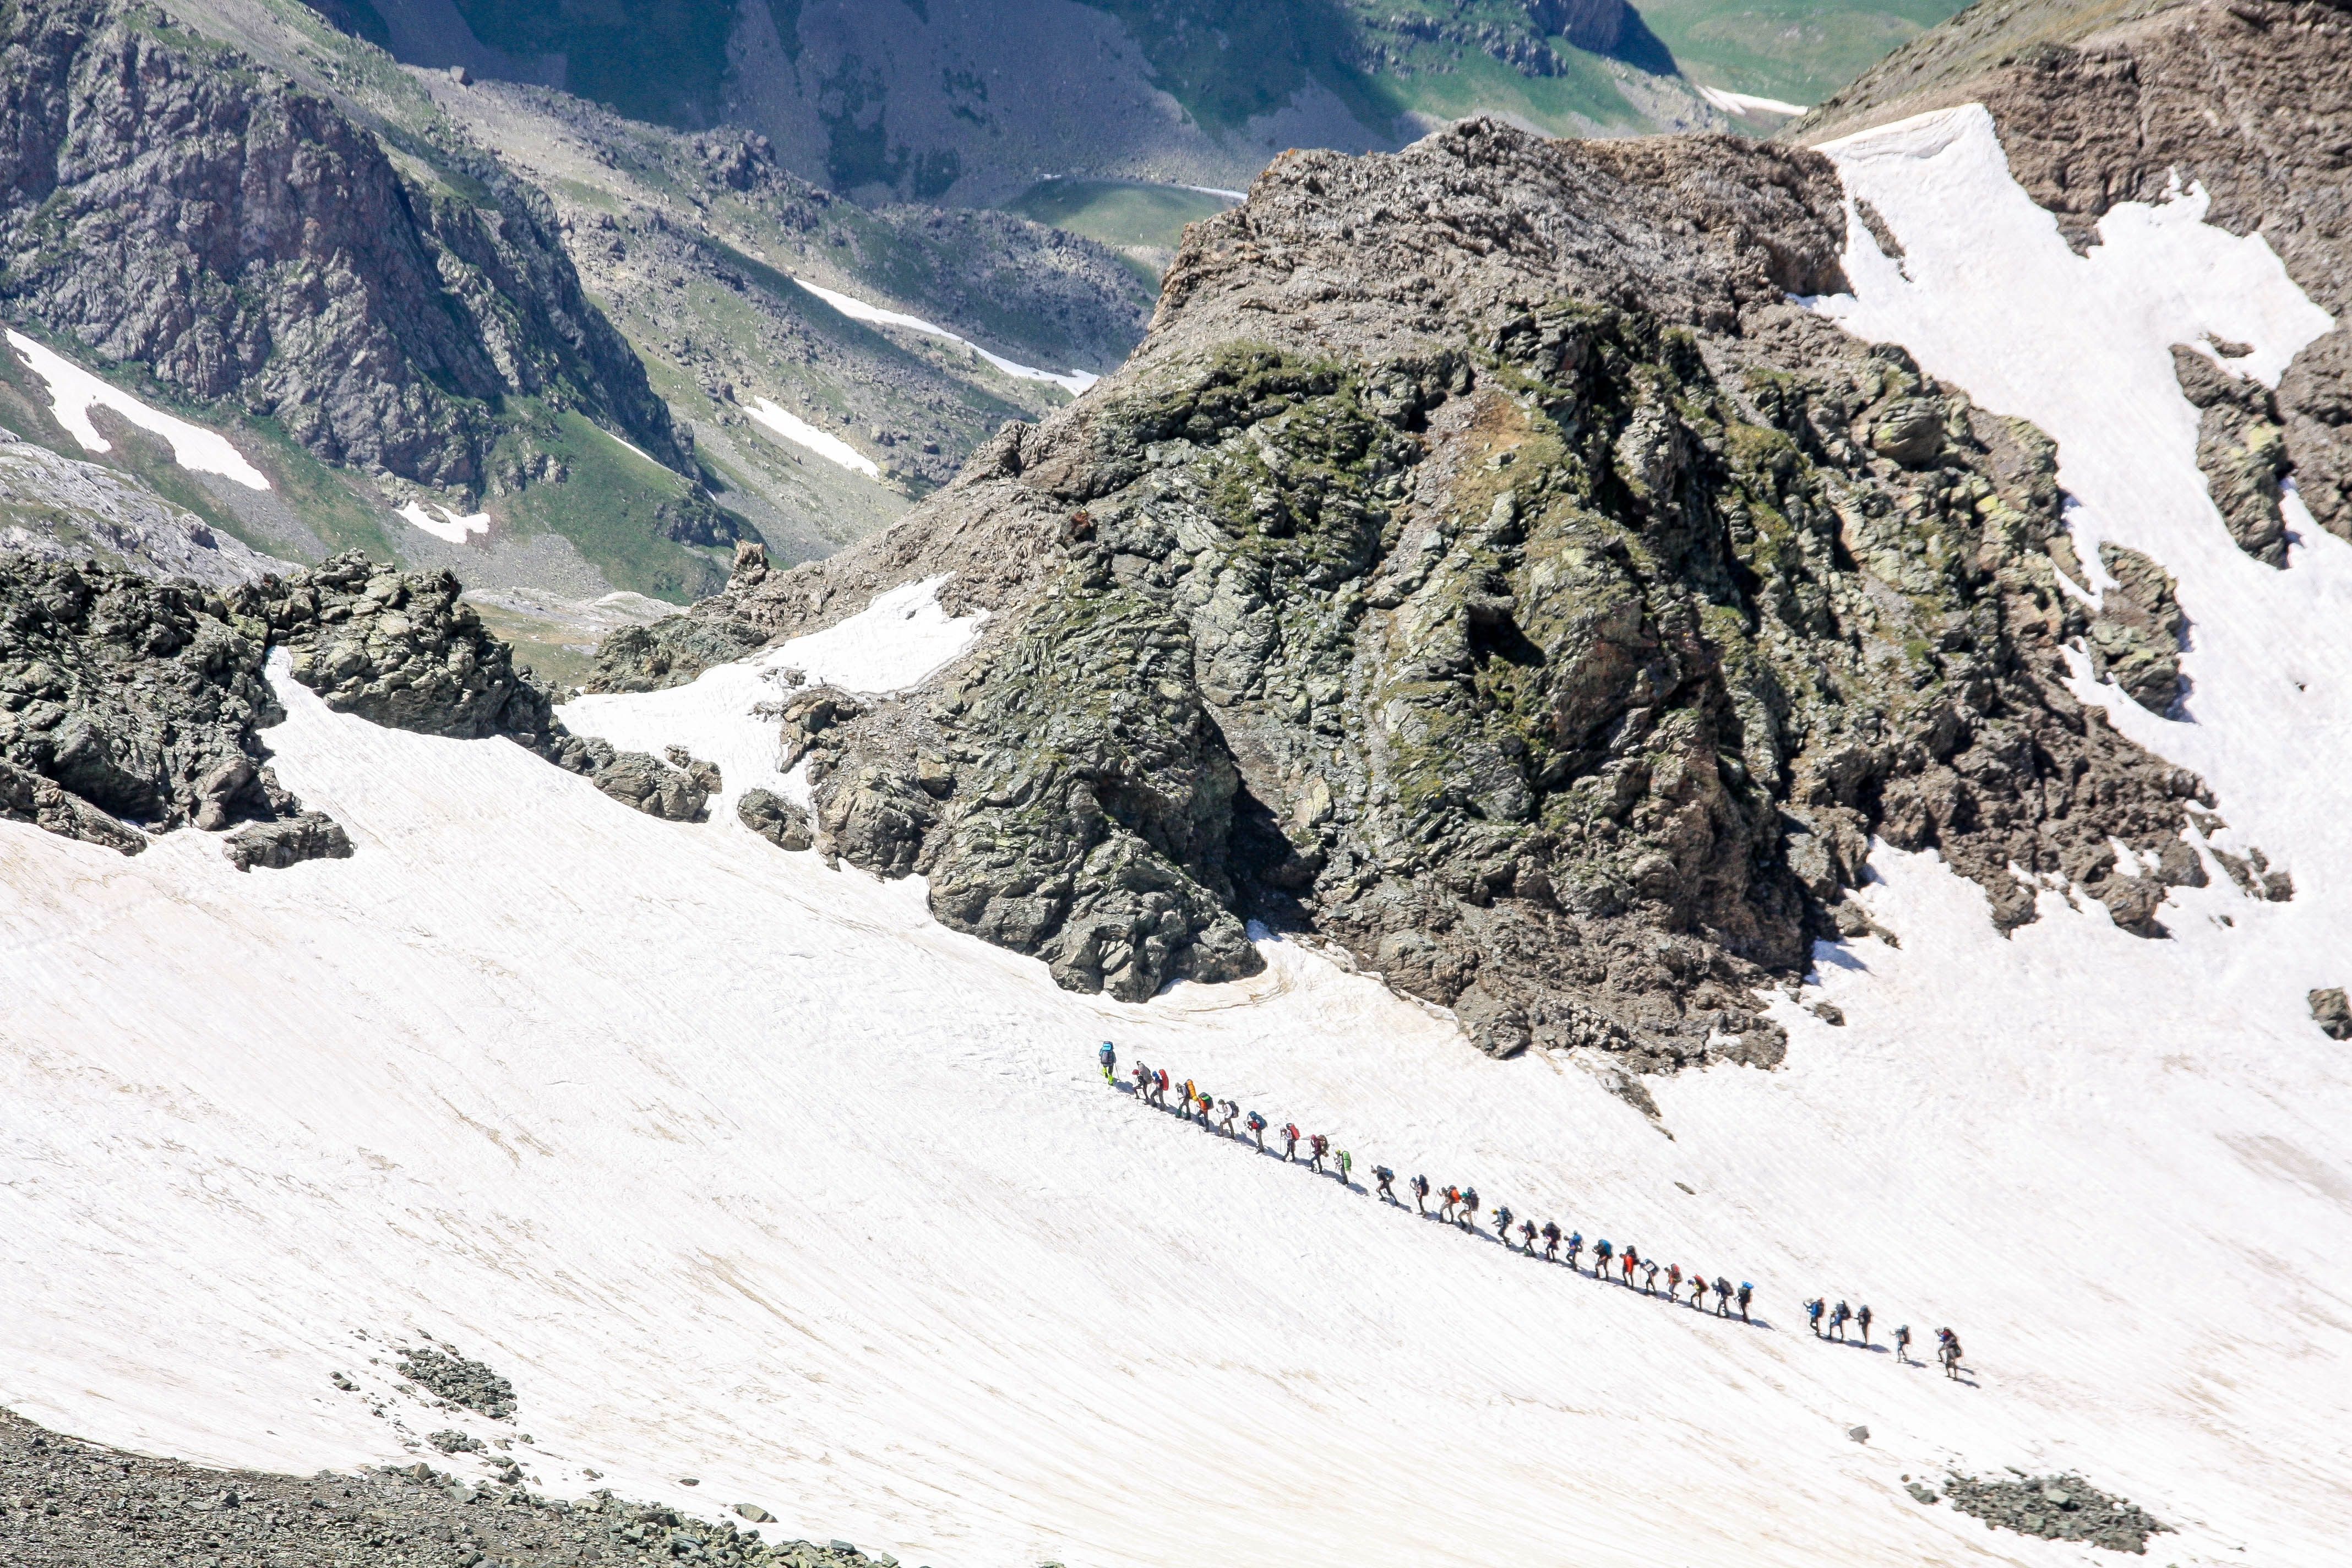 Line of hikers ascend a snowy mountain landscape